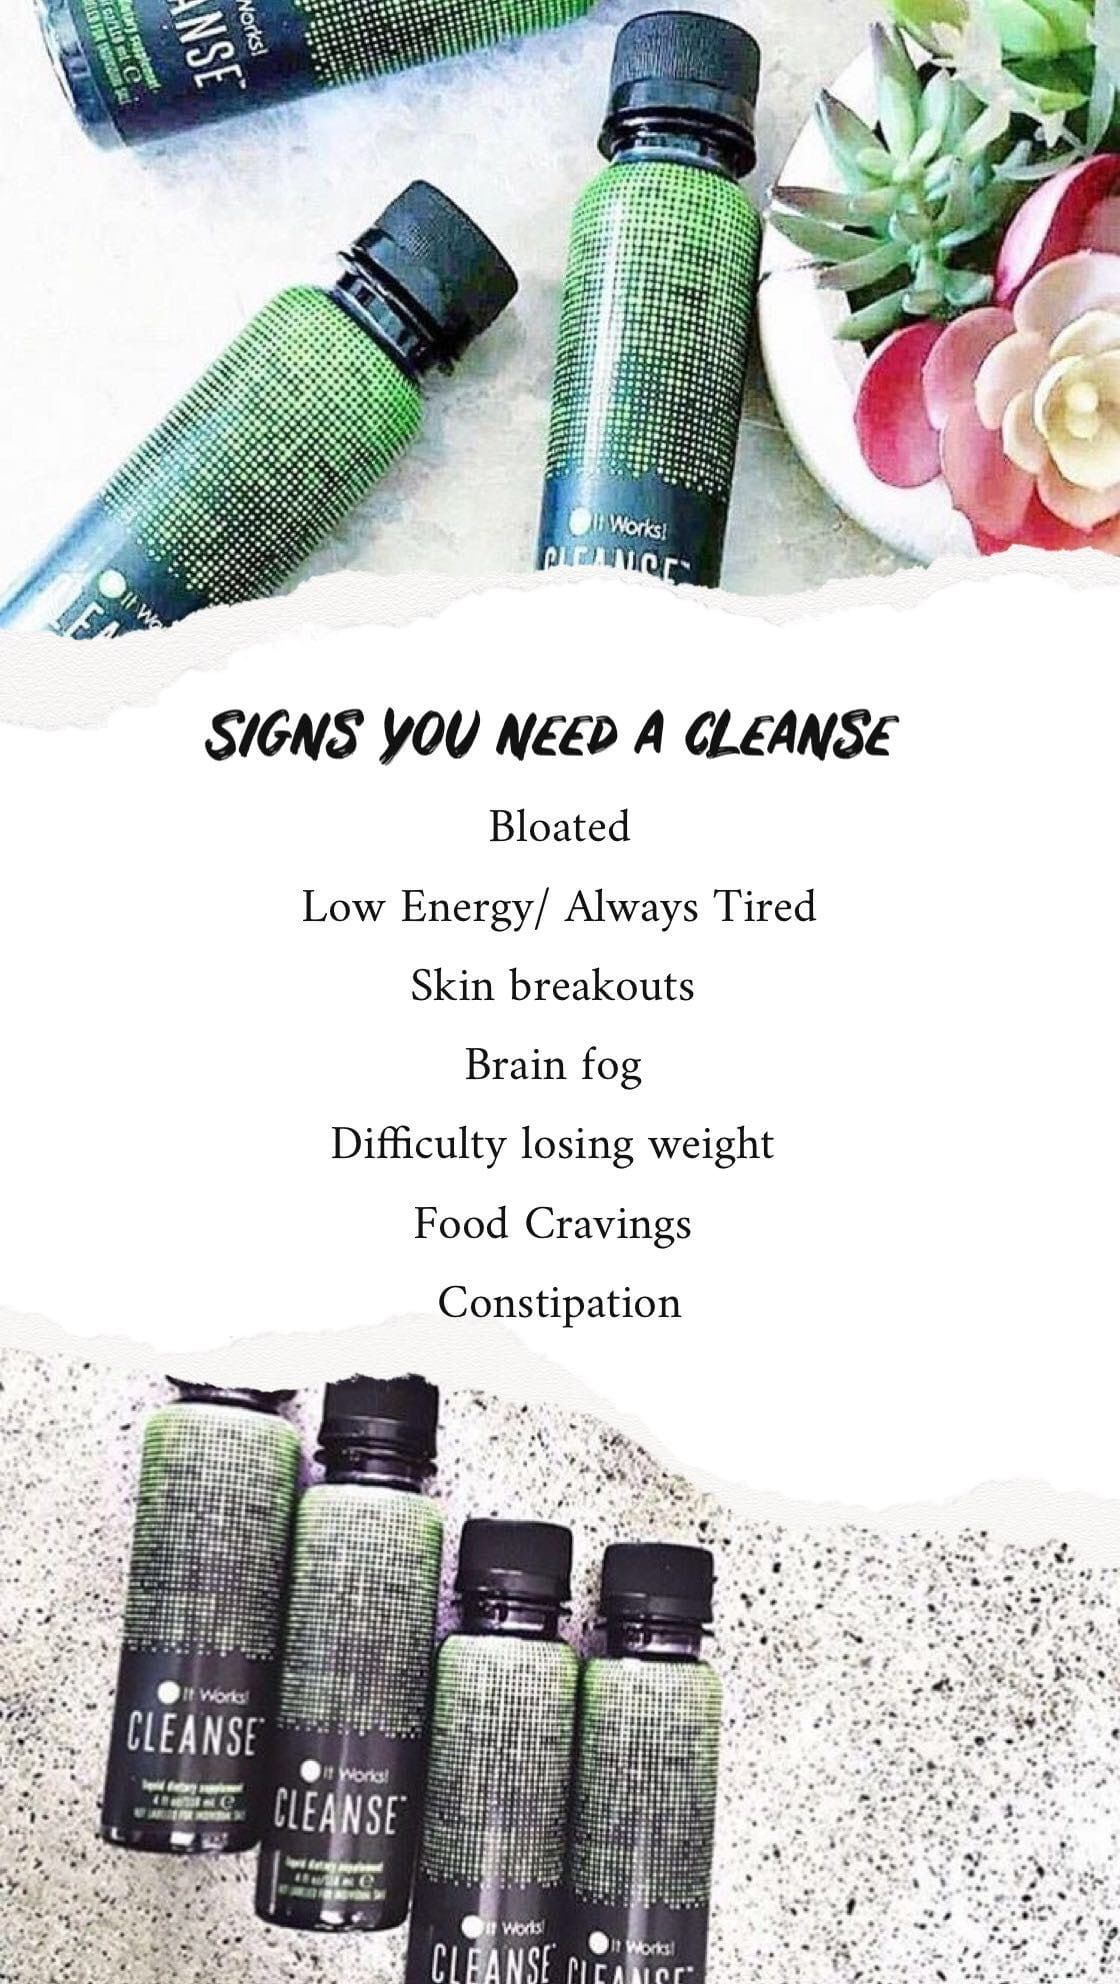 Pin by Mandy Friday on It Works! It works products, It